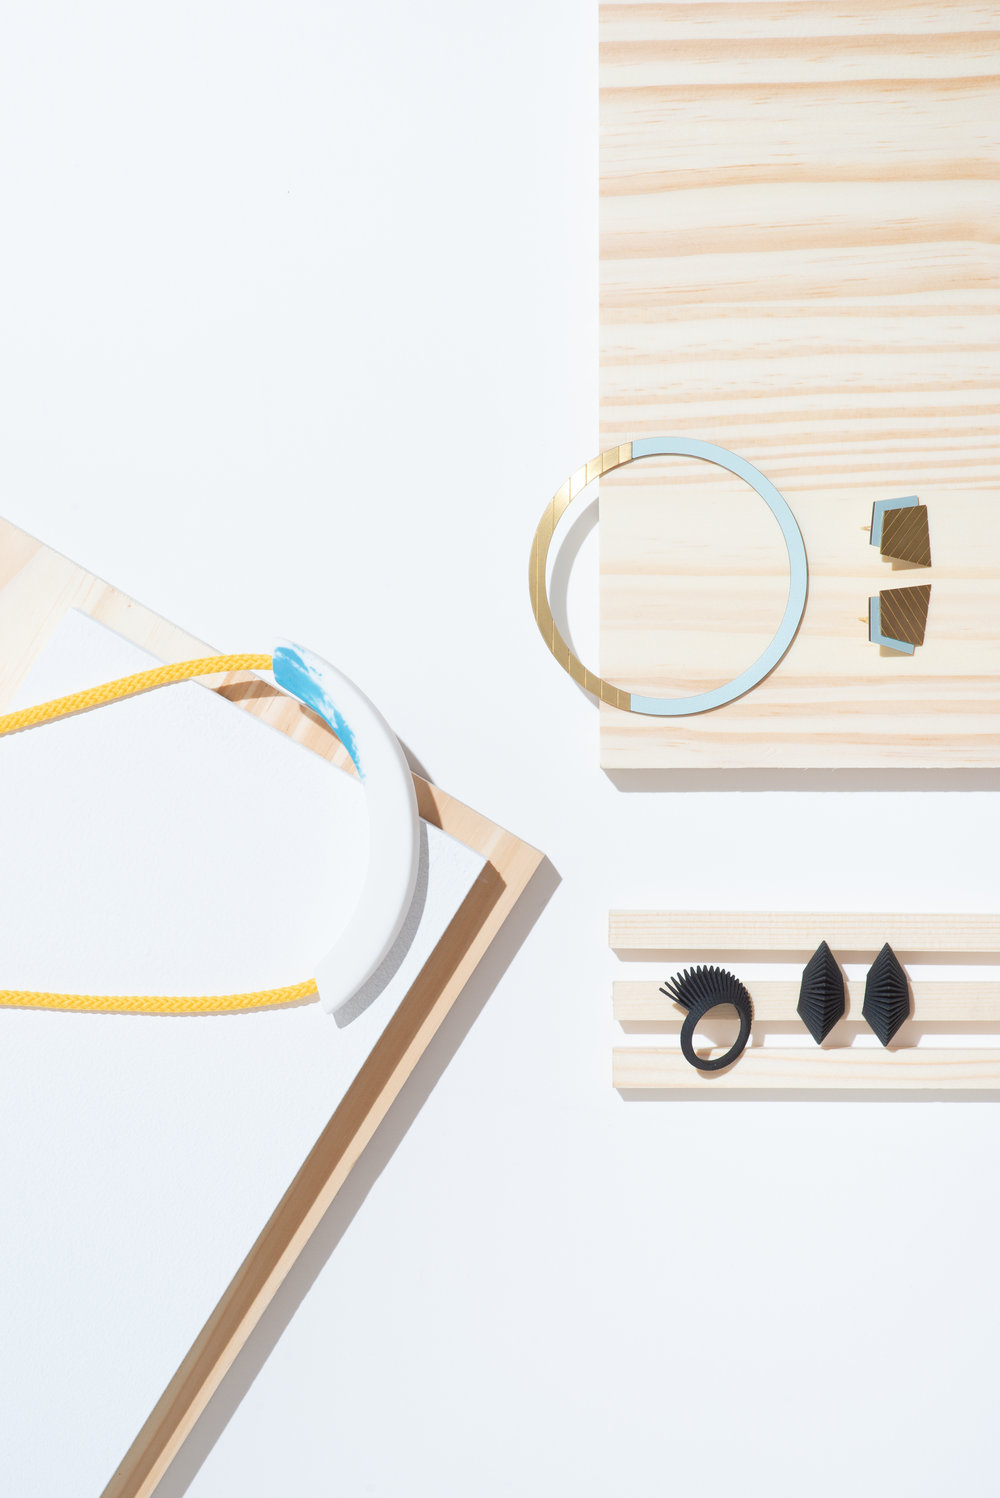 V&A dundee Styled Product Shoot JEwellery group (1 of 9).jpg